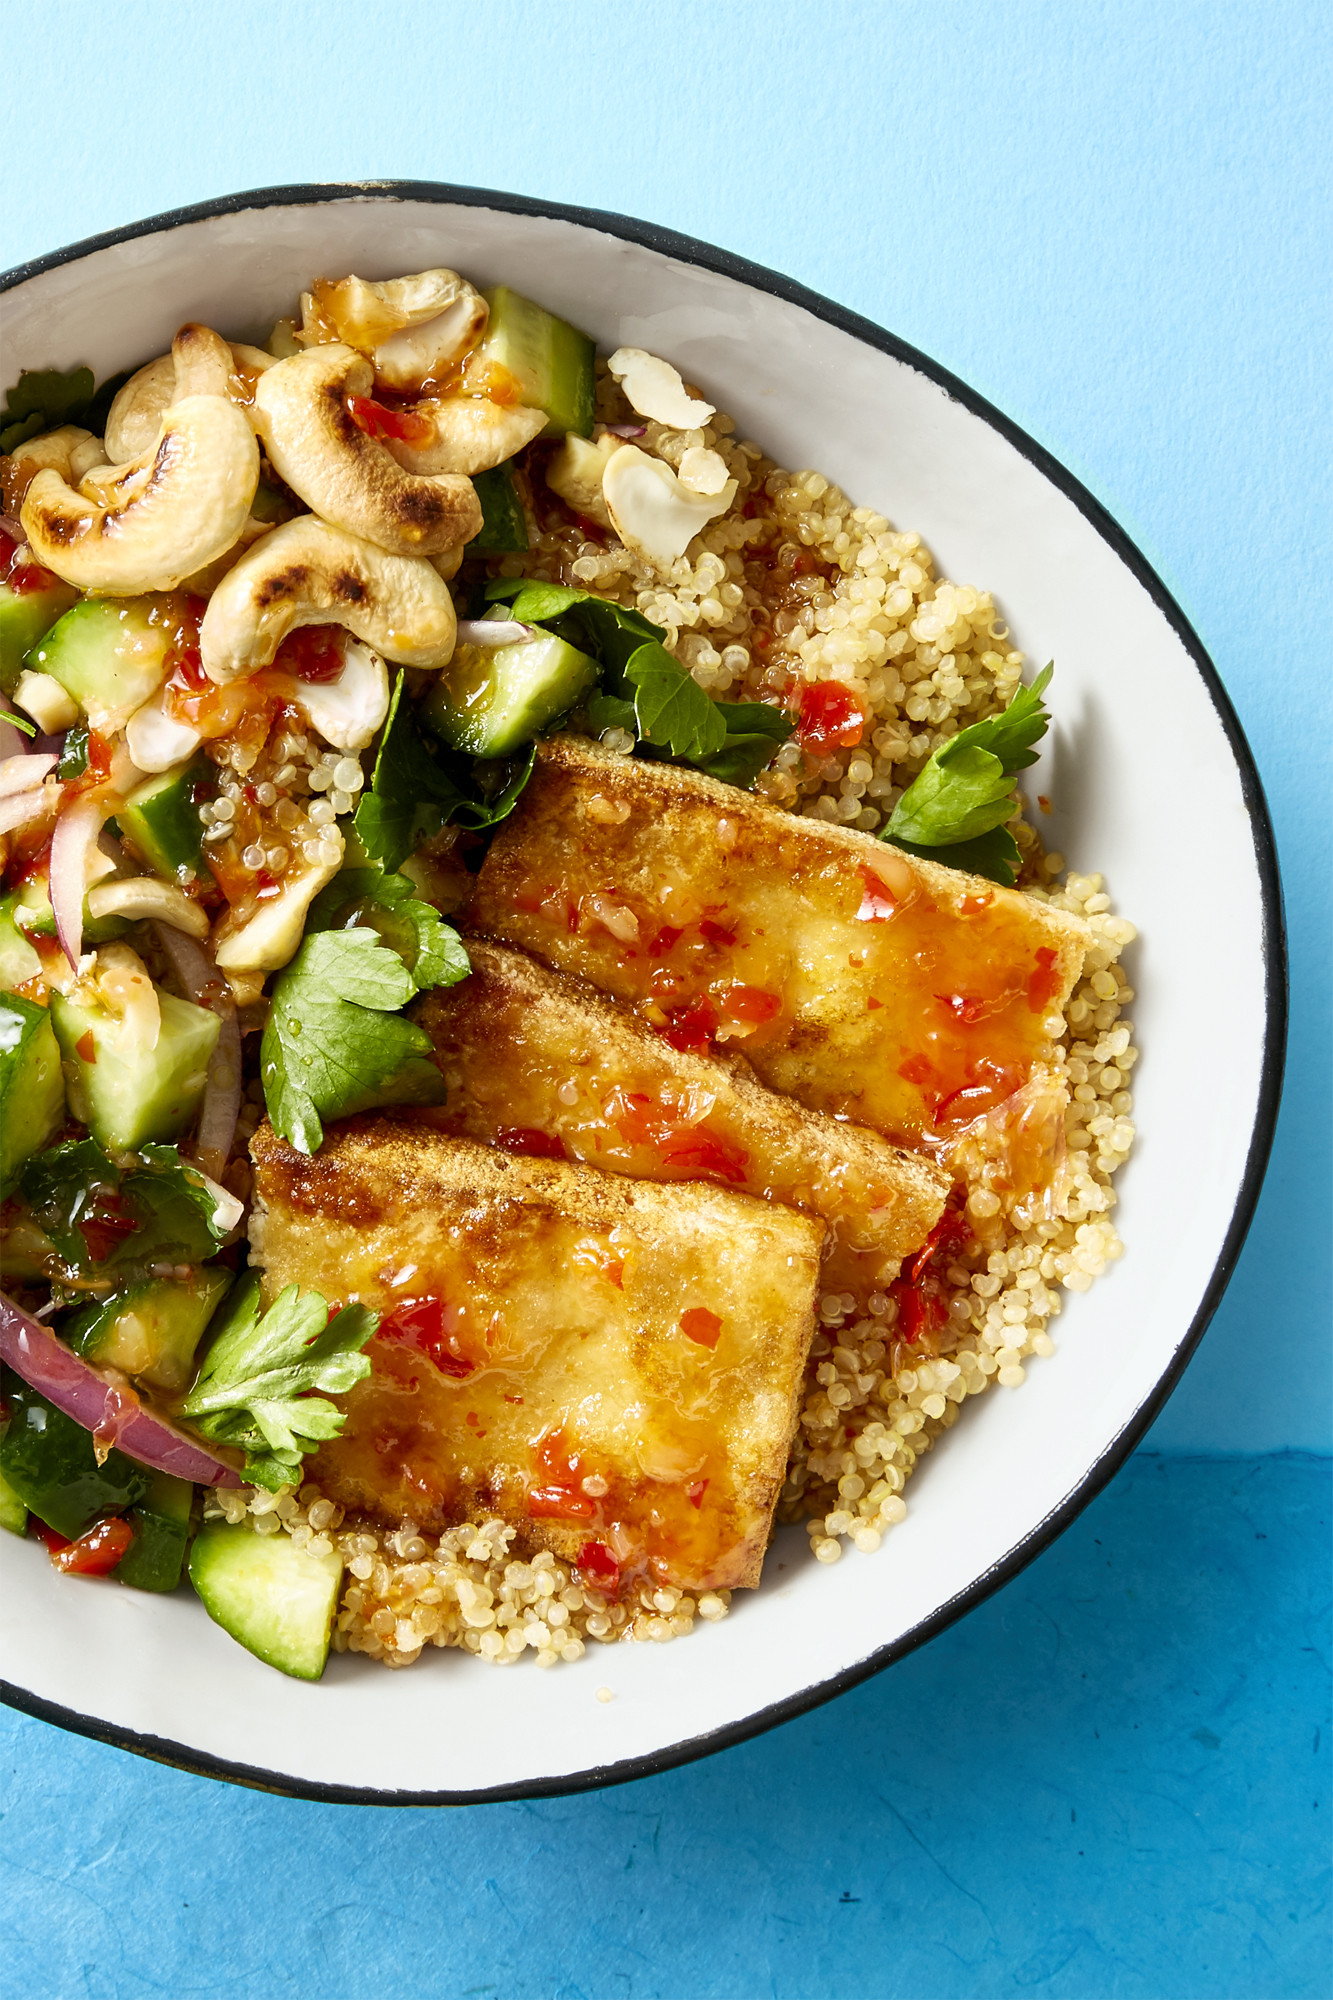 Tofu Recipes Healthy  Best Crispy Tofu Bowl Recipe How to Make Crispy Tofu Bowl